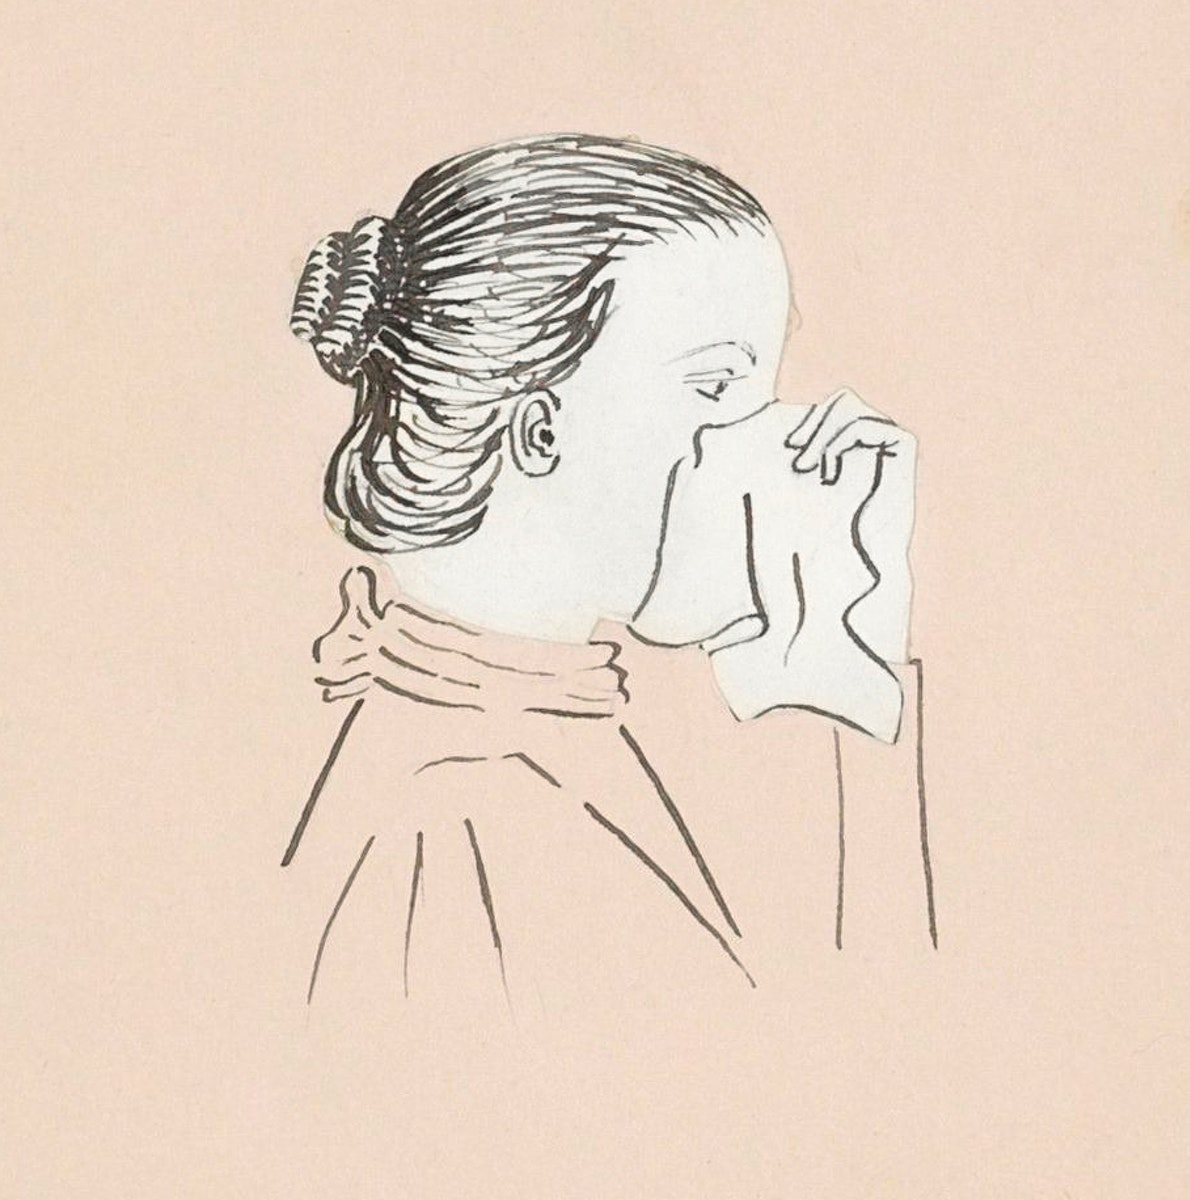 Head of a woman with a handkerchief against her nose (1894) by Julie de Graag (1877-1924). Original from The Rijksmuseum.…